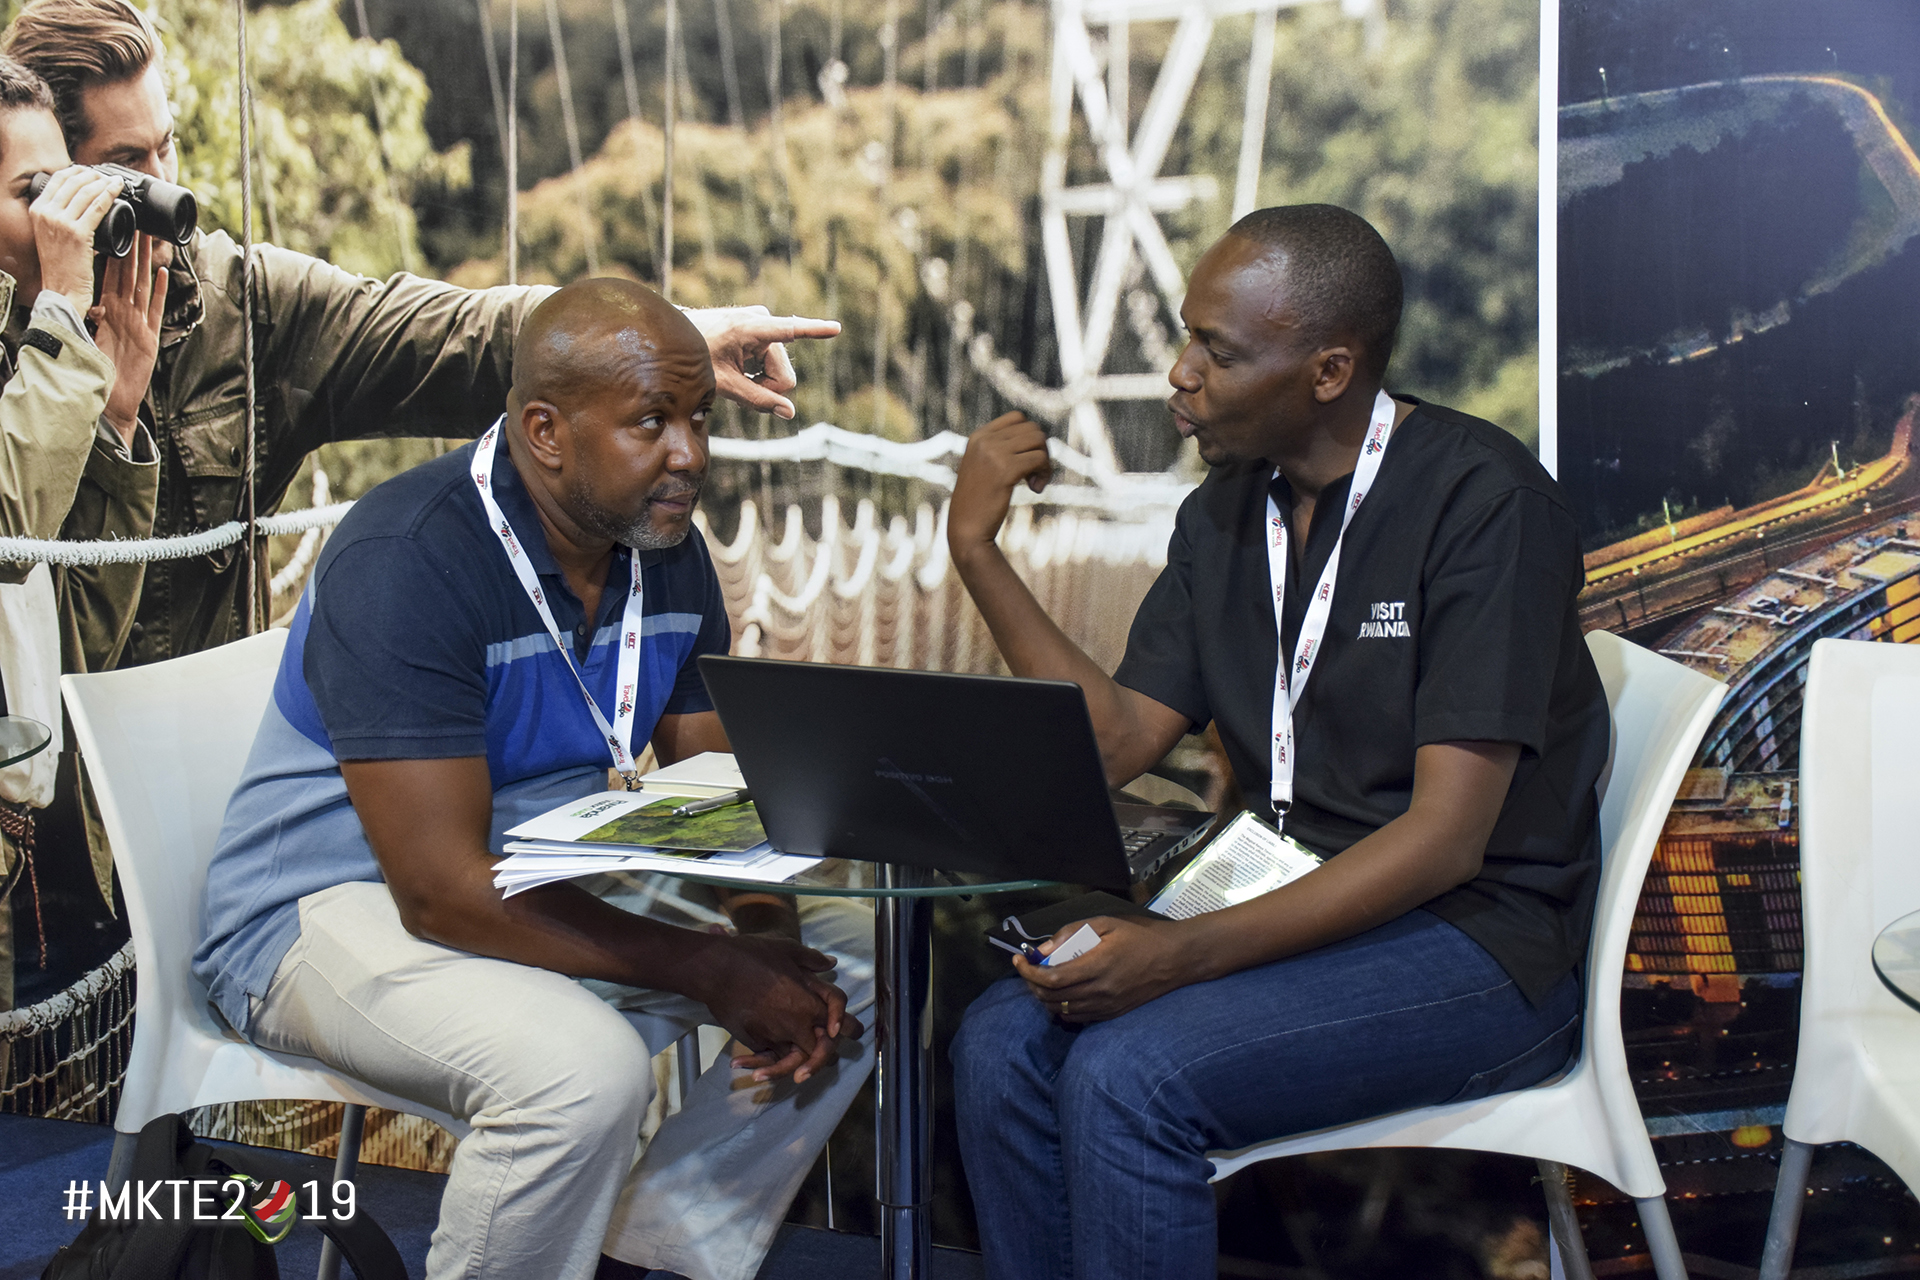 MKTE 2019_Meetings & Interactions_006